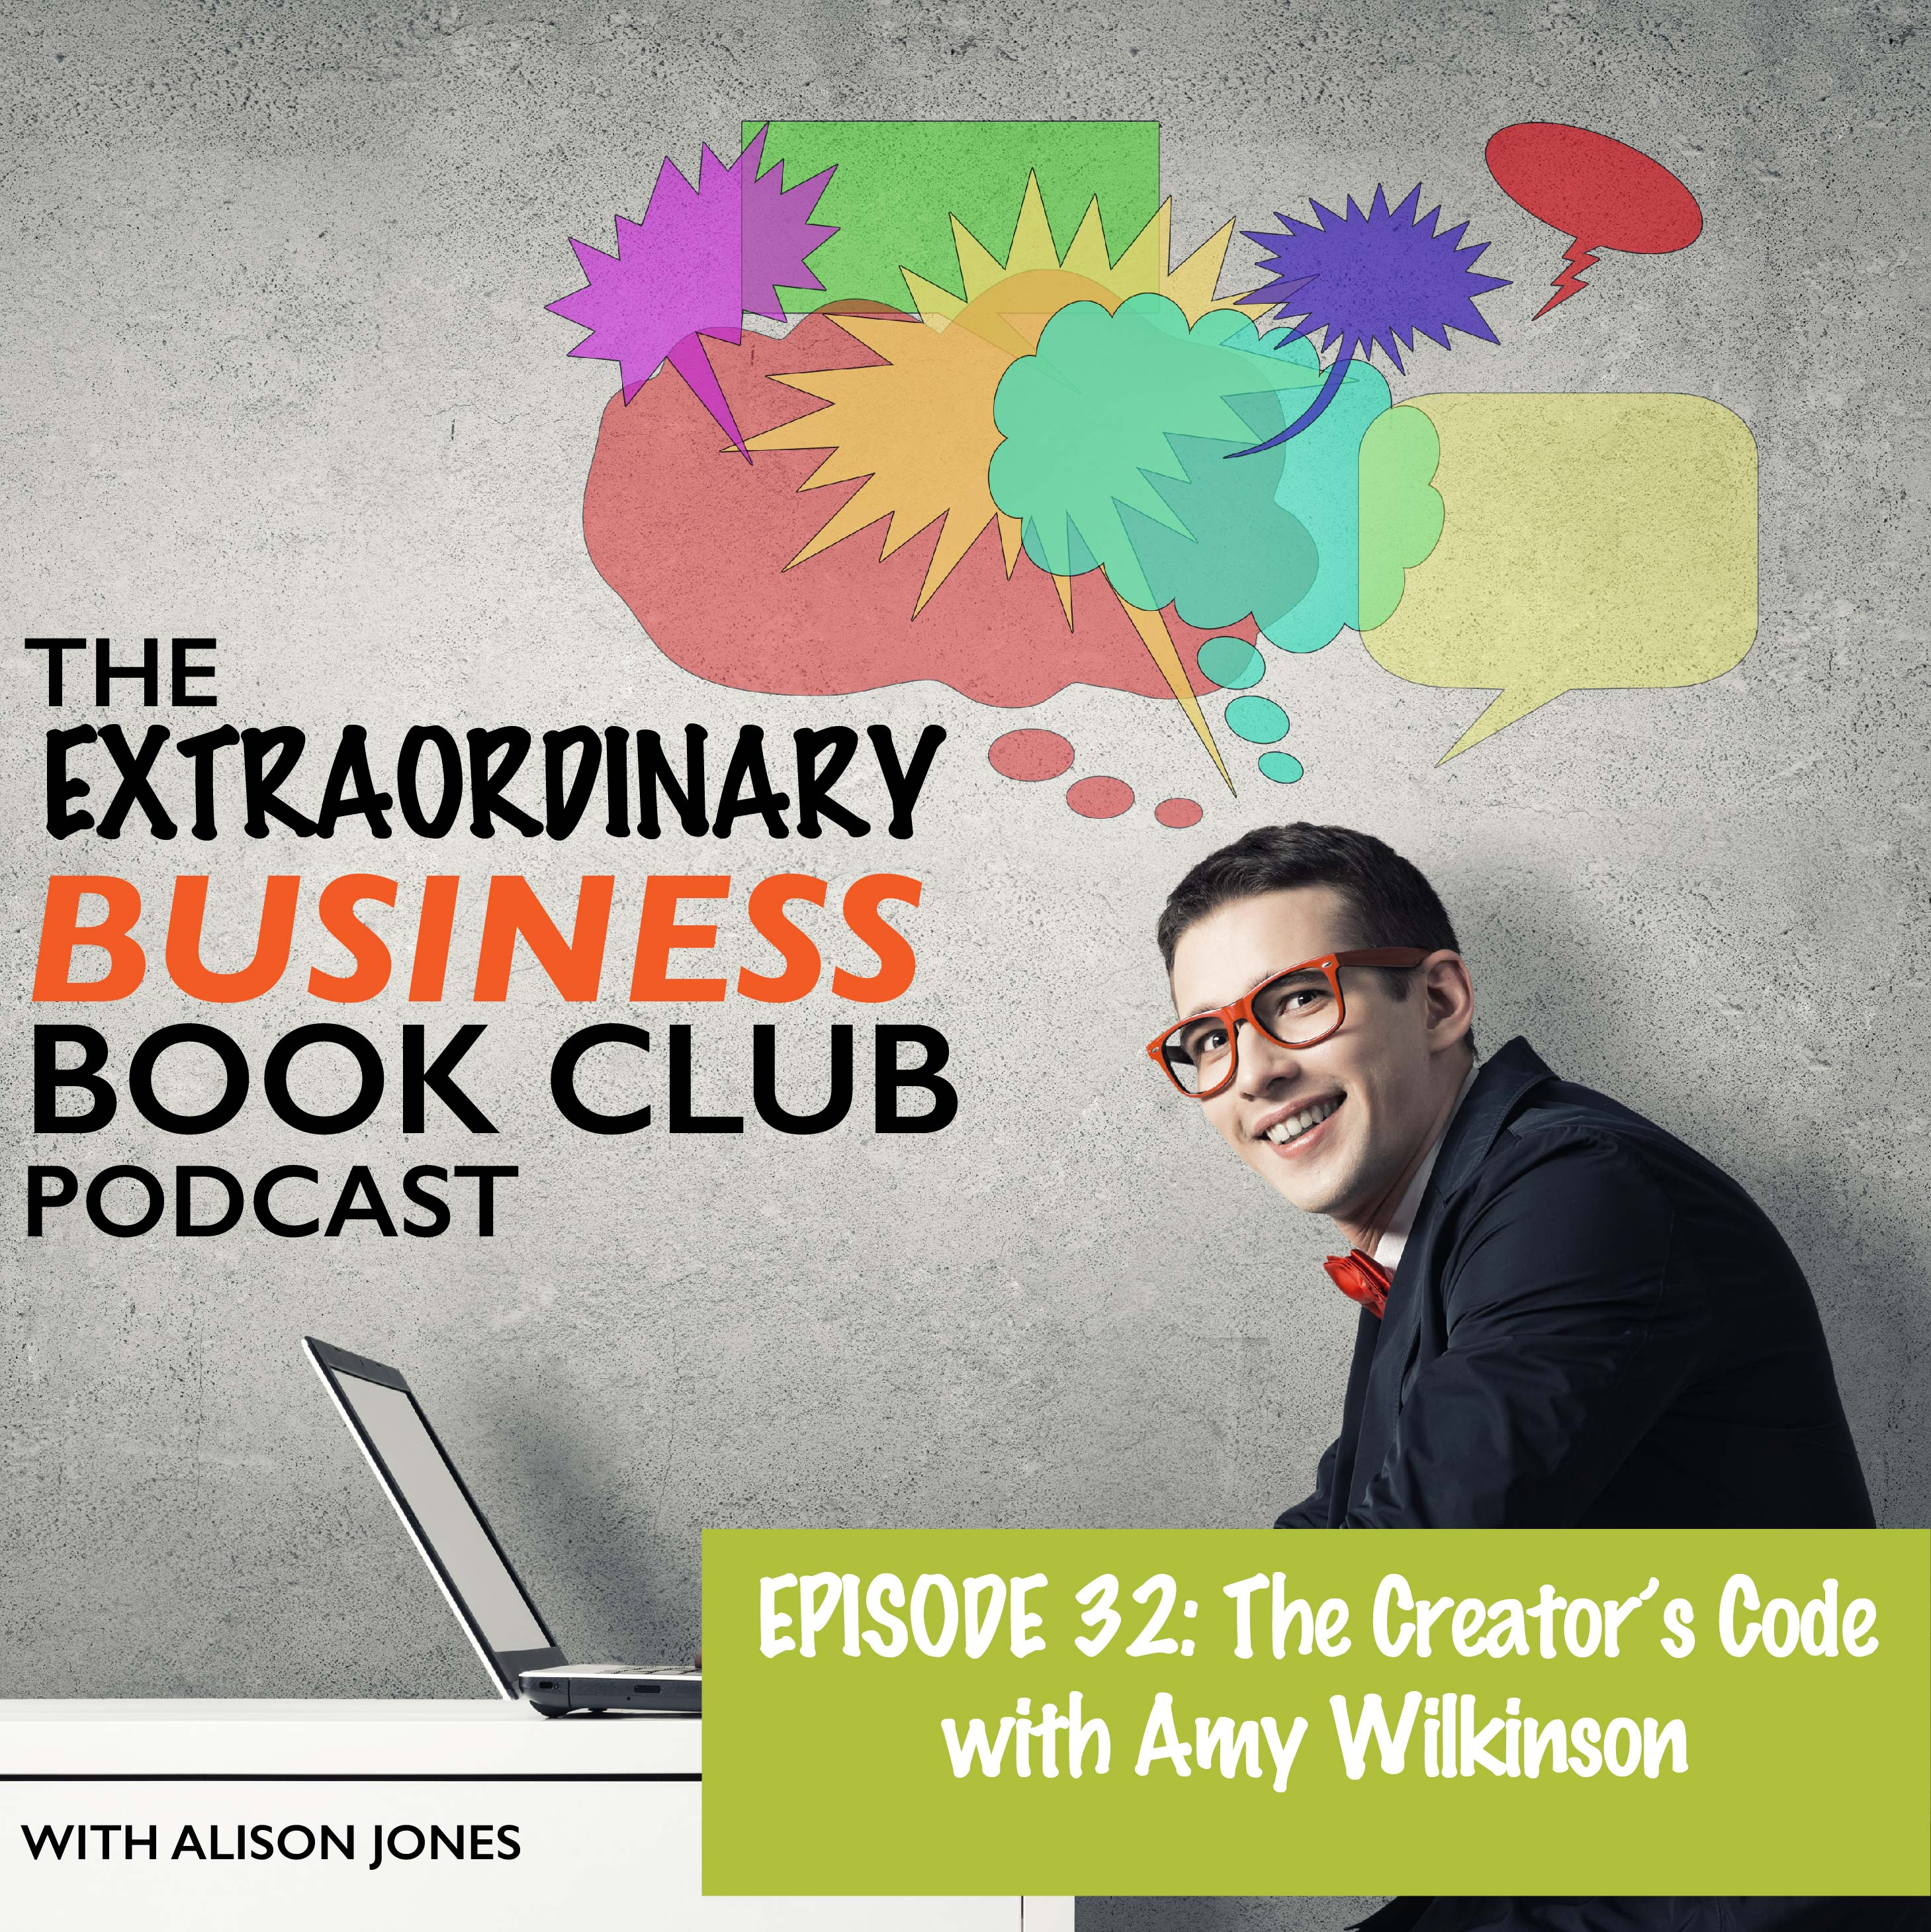 Episode 32 – The Creator's Code with Amy Wilkinson